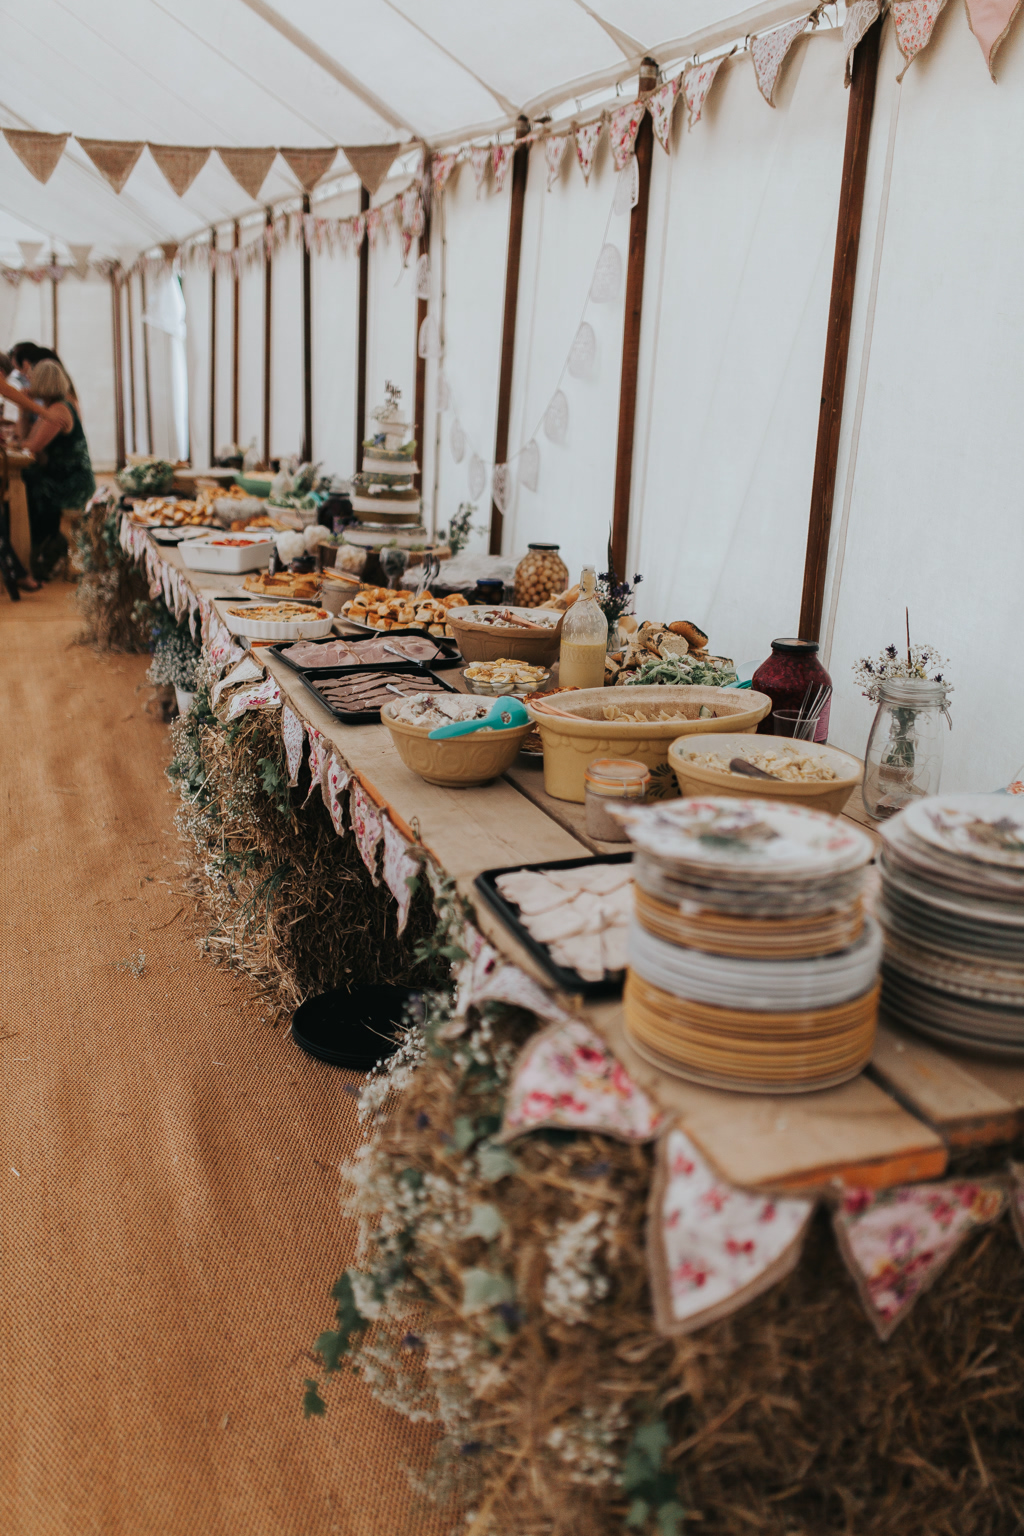 Emily and Phillip's Amazing Rustic DIY Tent Marquee Wedding in a Field in Colchester, Essex! 53